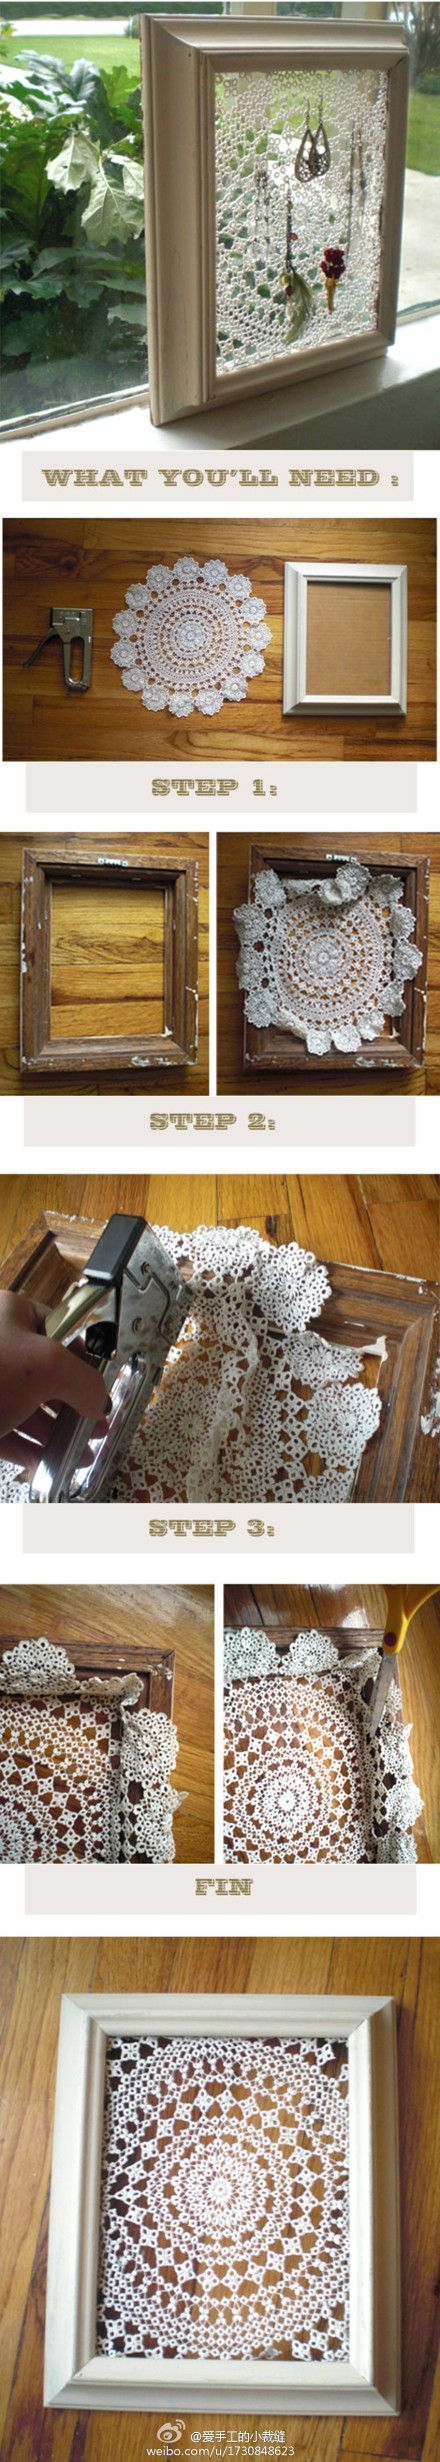 Ideas- Awesome Jewelry Holder from a Framed Doily!! Or you could just hang it up as art in your home- in which case you'd definitely want to back it & use glass on the front!!: